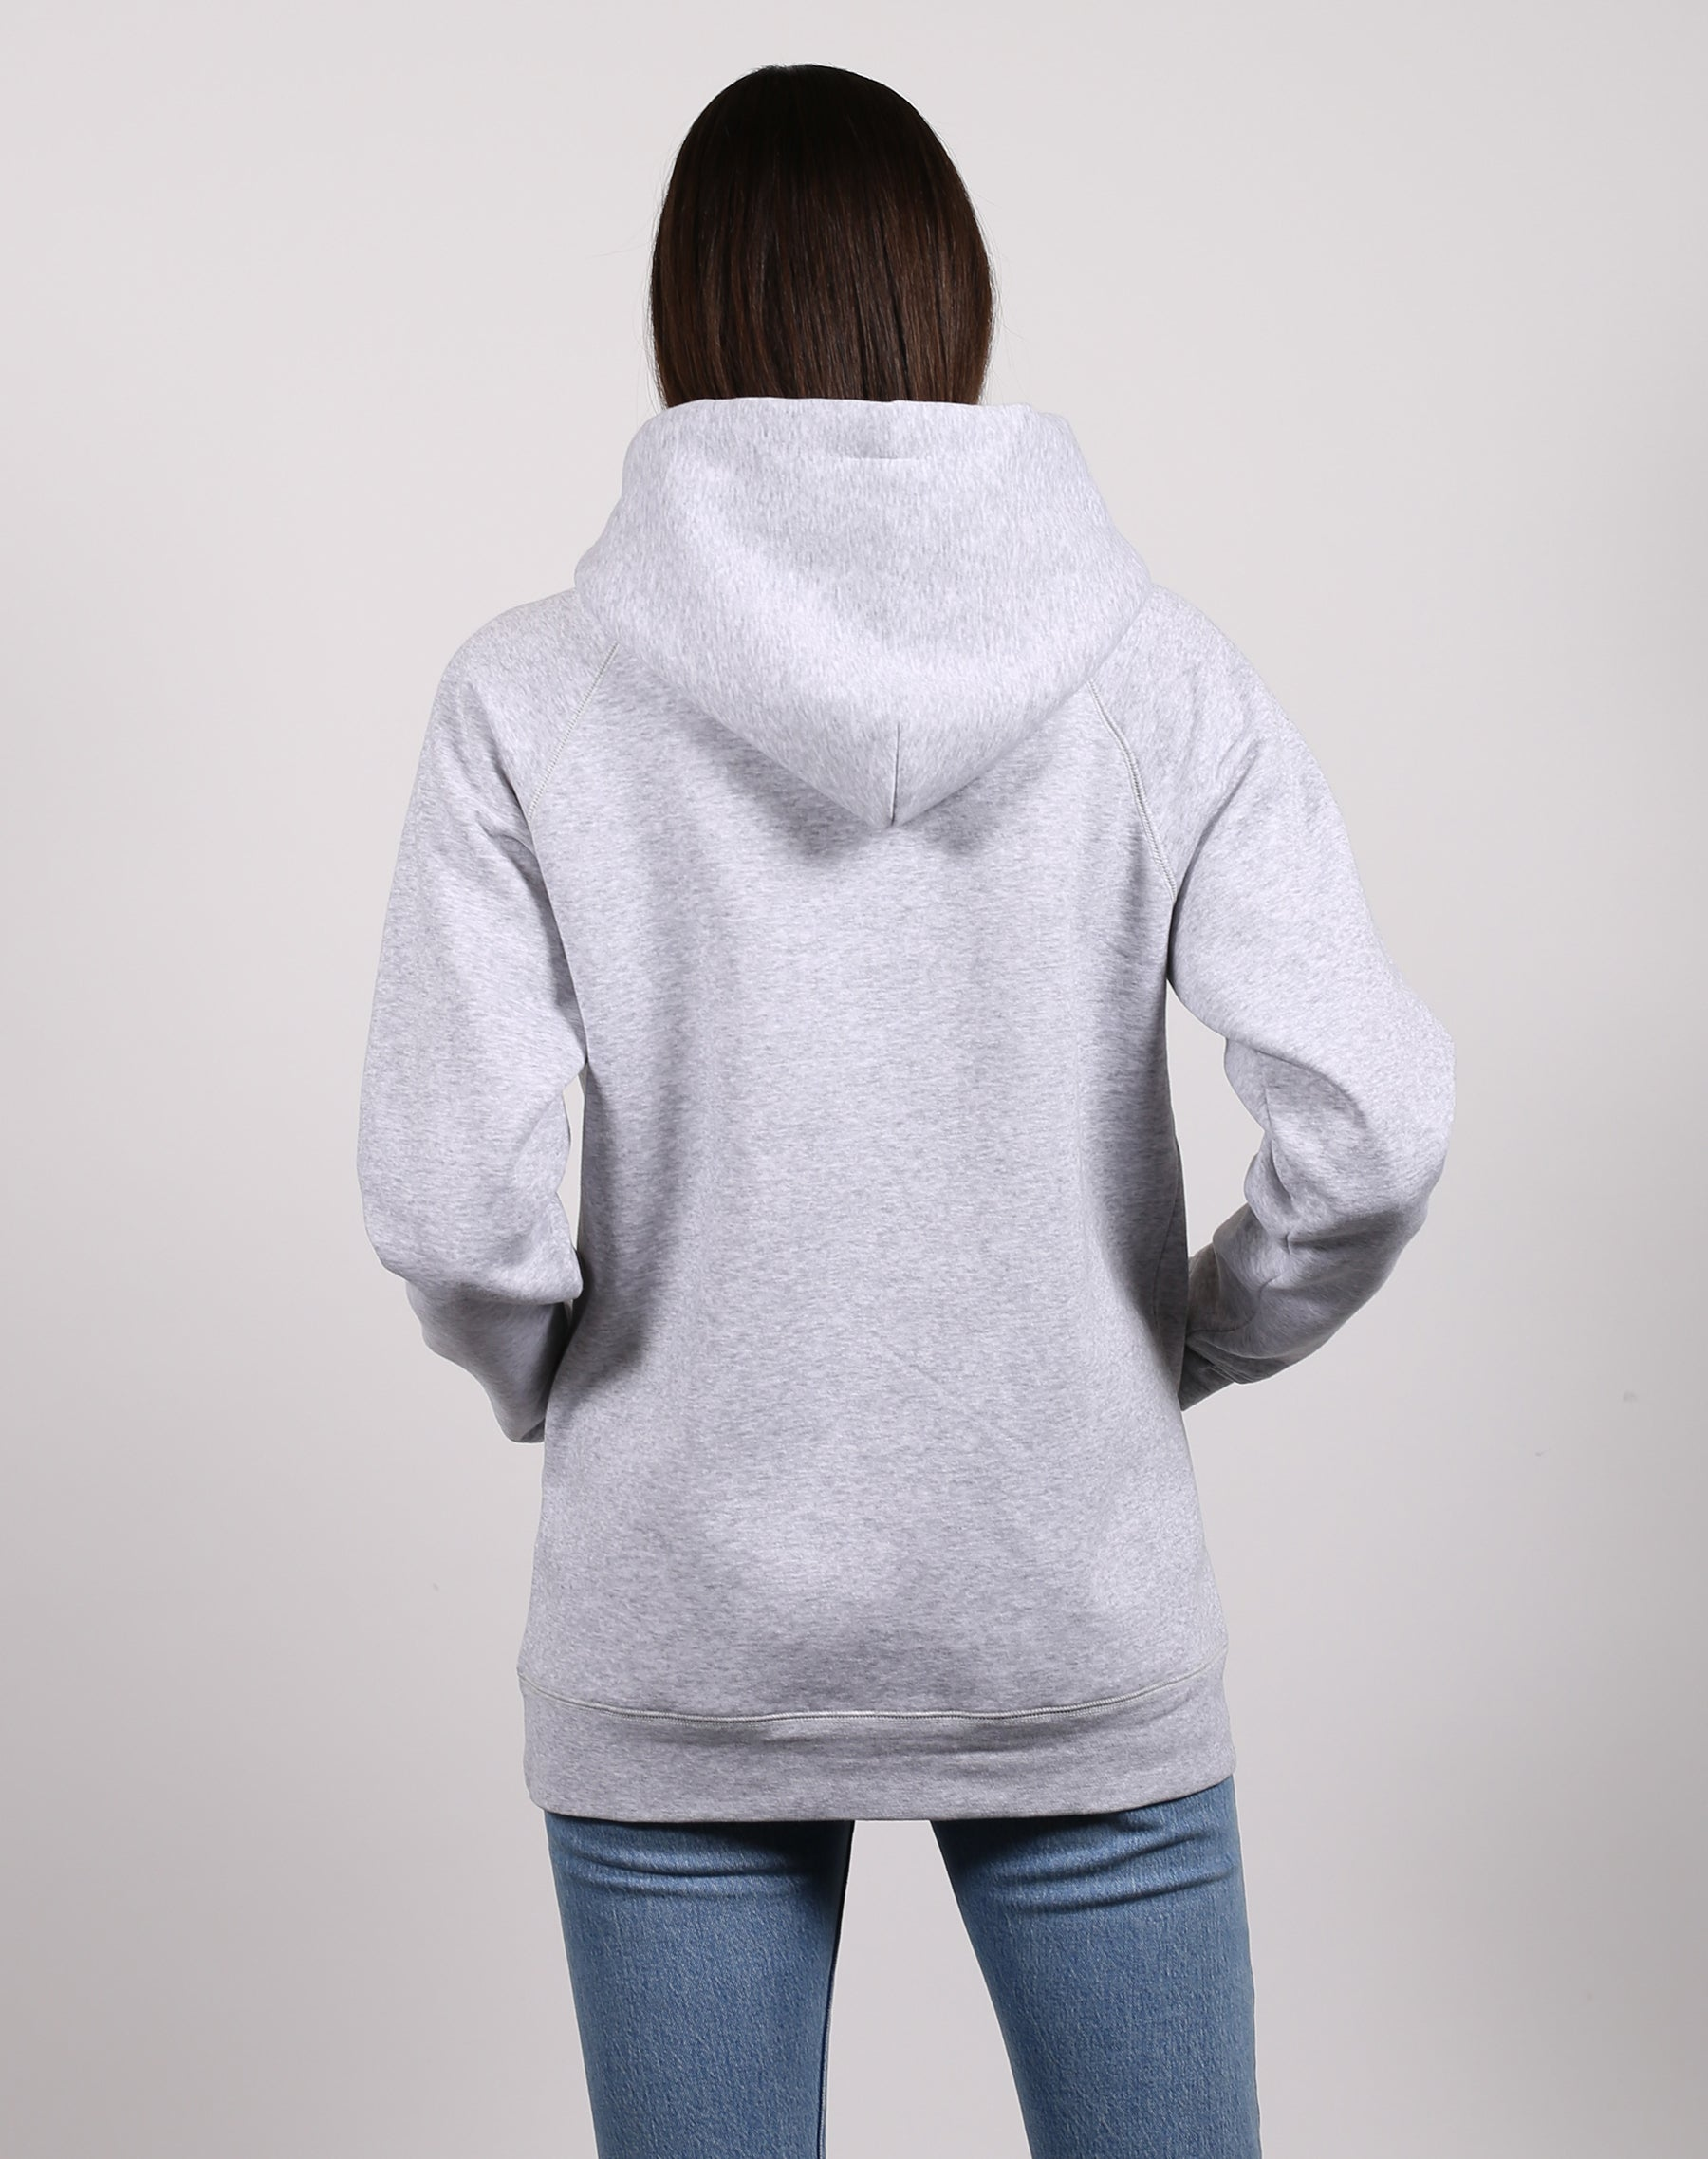 This is a photo of the front of the Brunette classic hoodie in pebble grey by Brunette the Label